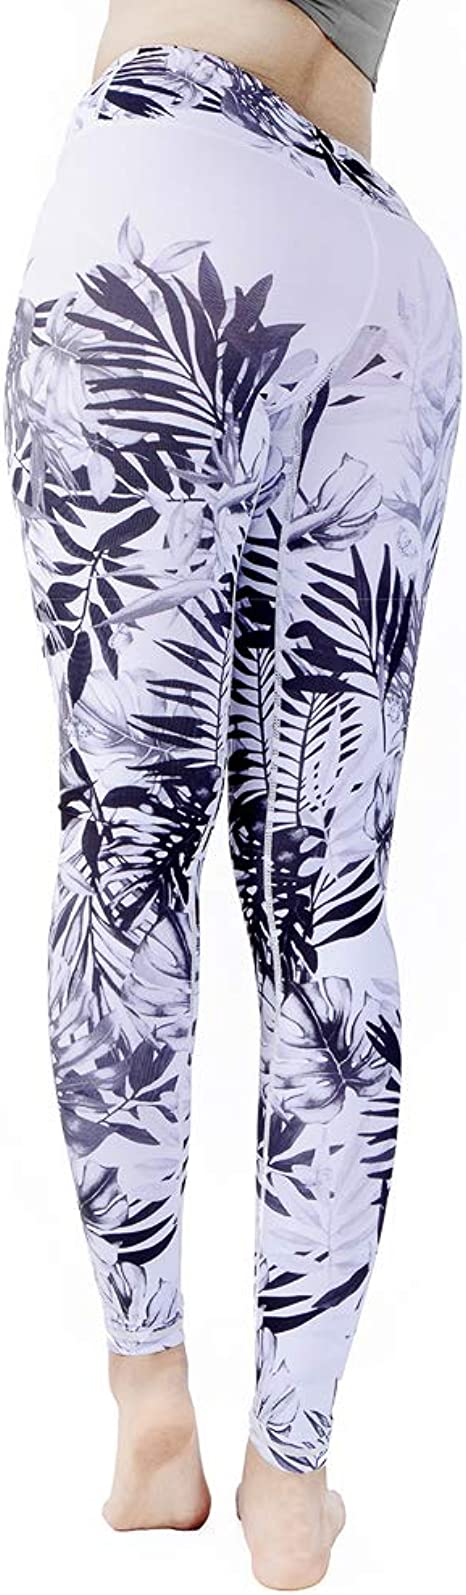 FENG LING Leggings for Women Super Soft High Waist Stretchy Workout Yoga Pants